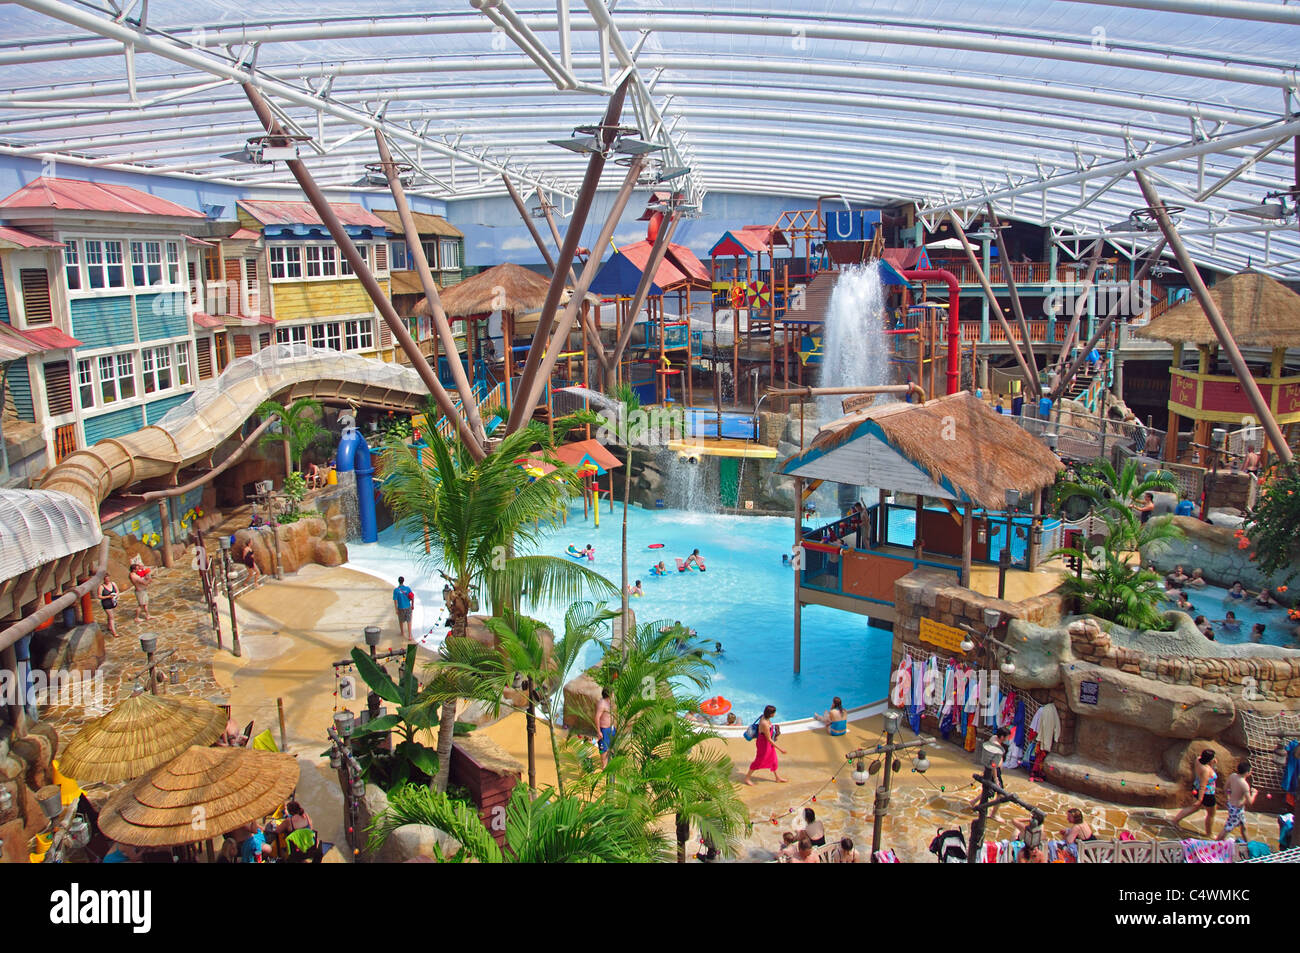 Alton Towers Waterpark at Splash Landings Hotel, Alton Towers Theme Park, Alton, Staffordshire, England, United Stock Photo